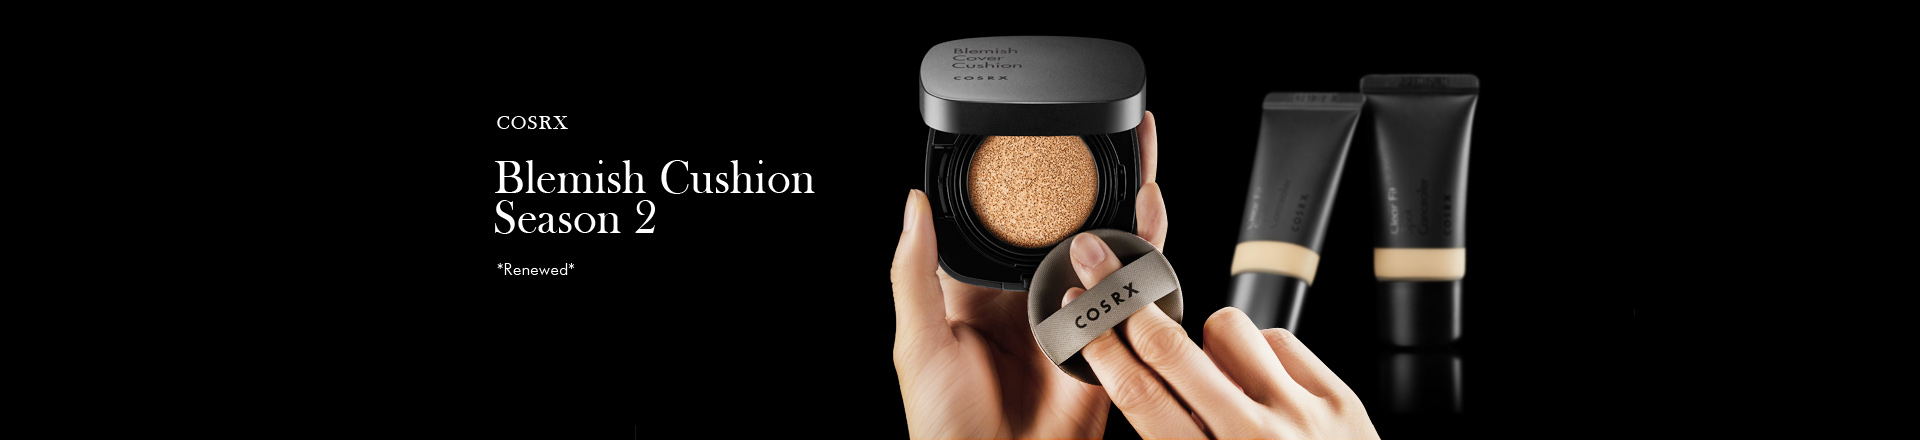 COSRX Blemish Cushion